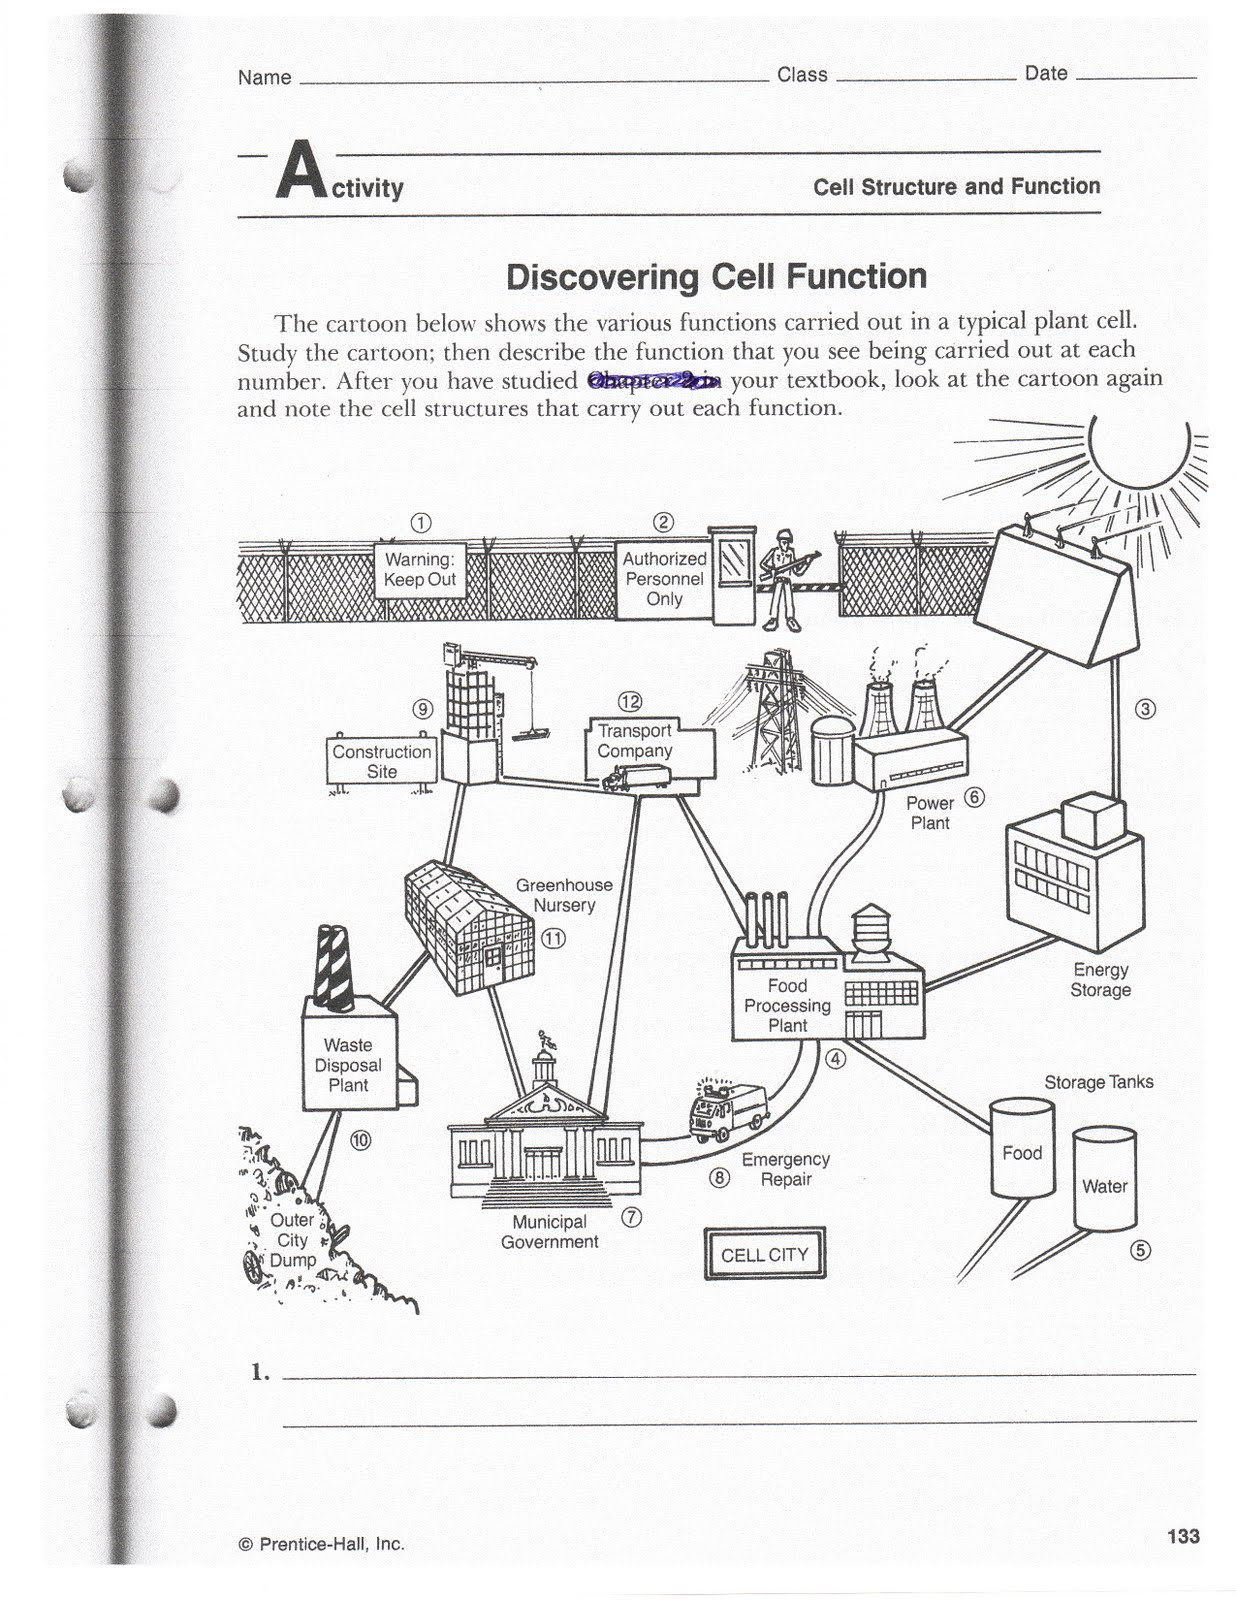 Worksheets Analogy Worksheet quarter 2 copy mrs bhandaris grade 7 science cell city drawing example